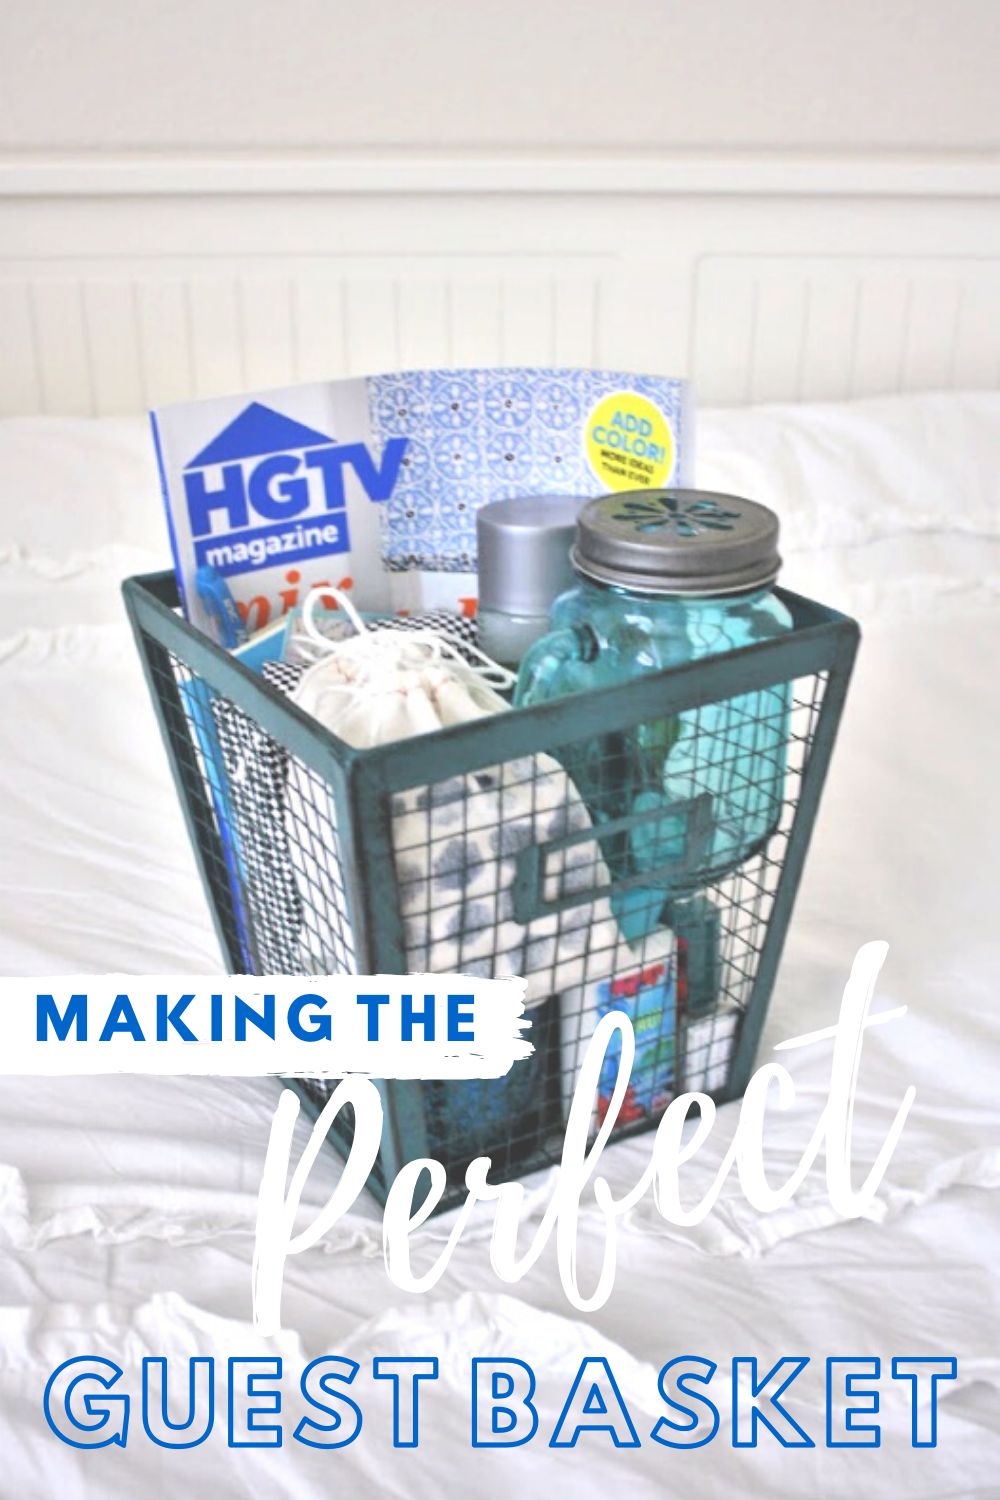 Putting Together A Perfect Guest Basket // Life Anchored